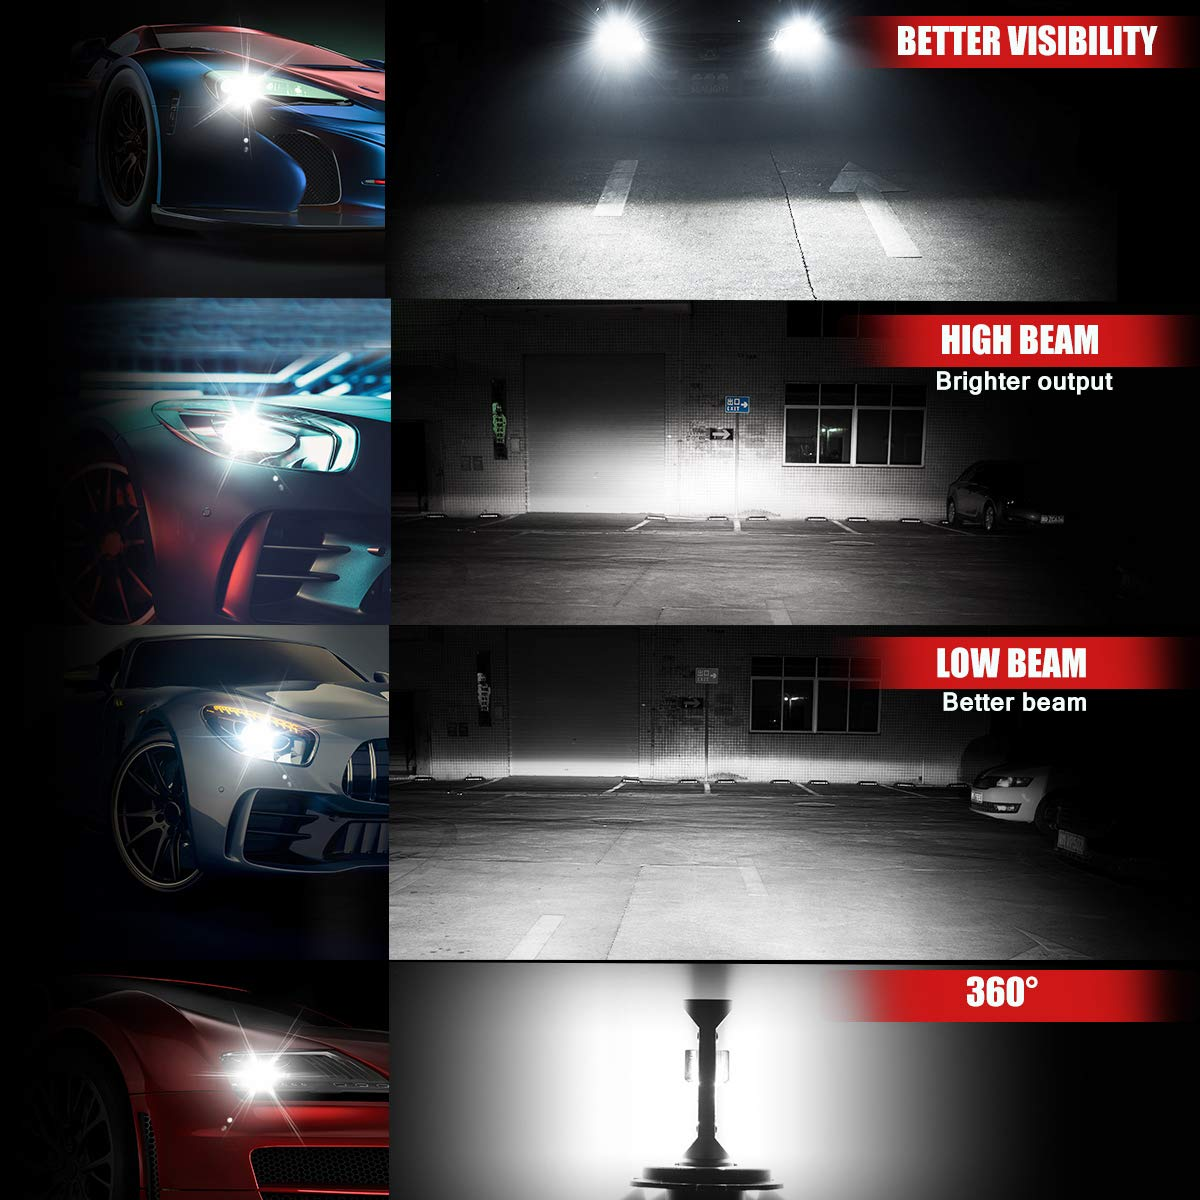 SEALIGHT 9005/HB3 High beam 9006/HB4 Low Beam LED Headlight Bulbs Combo Package CSP Chips 6000LM 6000K (4 Pack, 2 Sets) by SEALIGHT (Image #2)